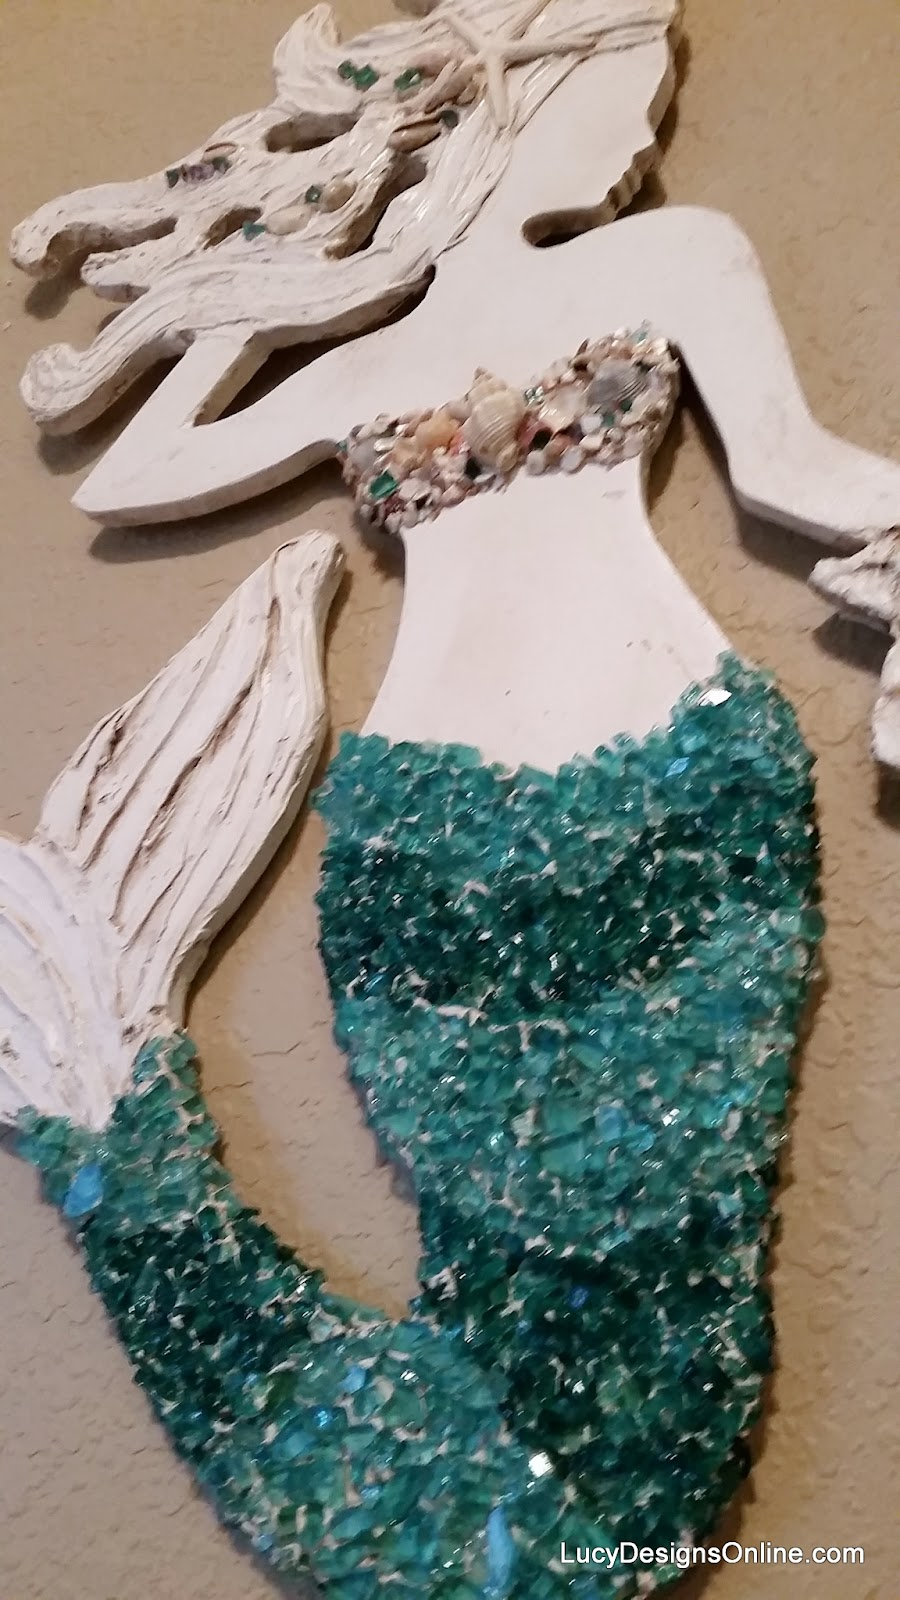 mermaid with glass mosaic tail